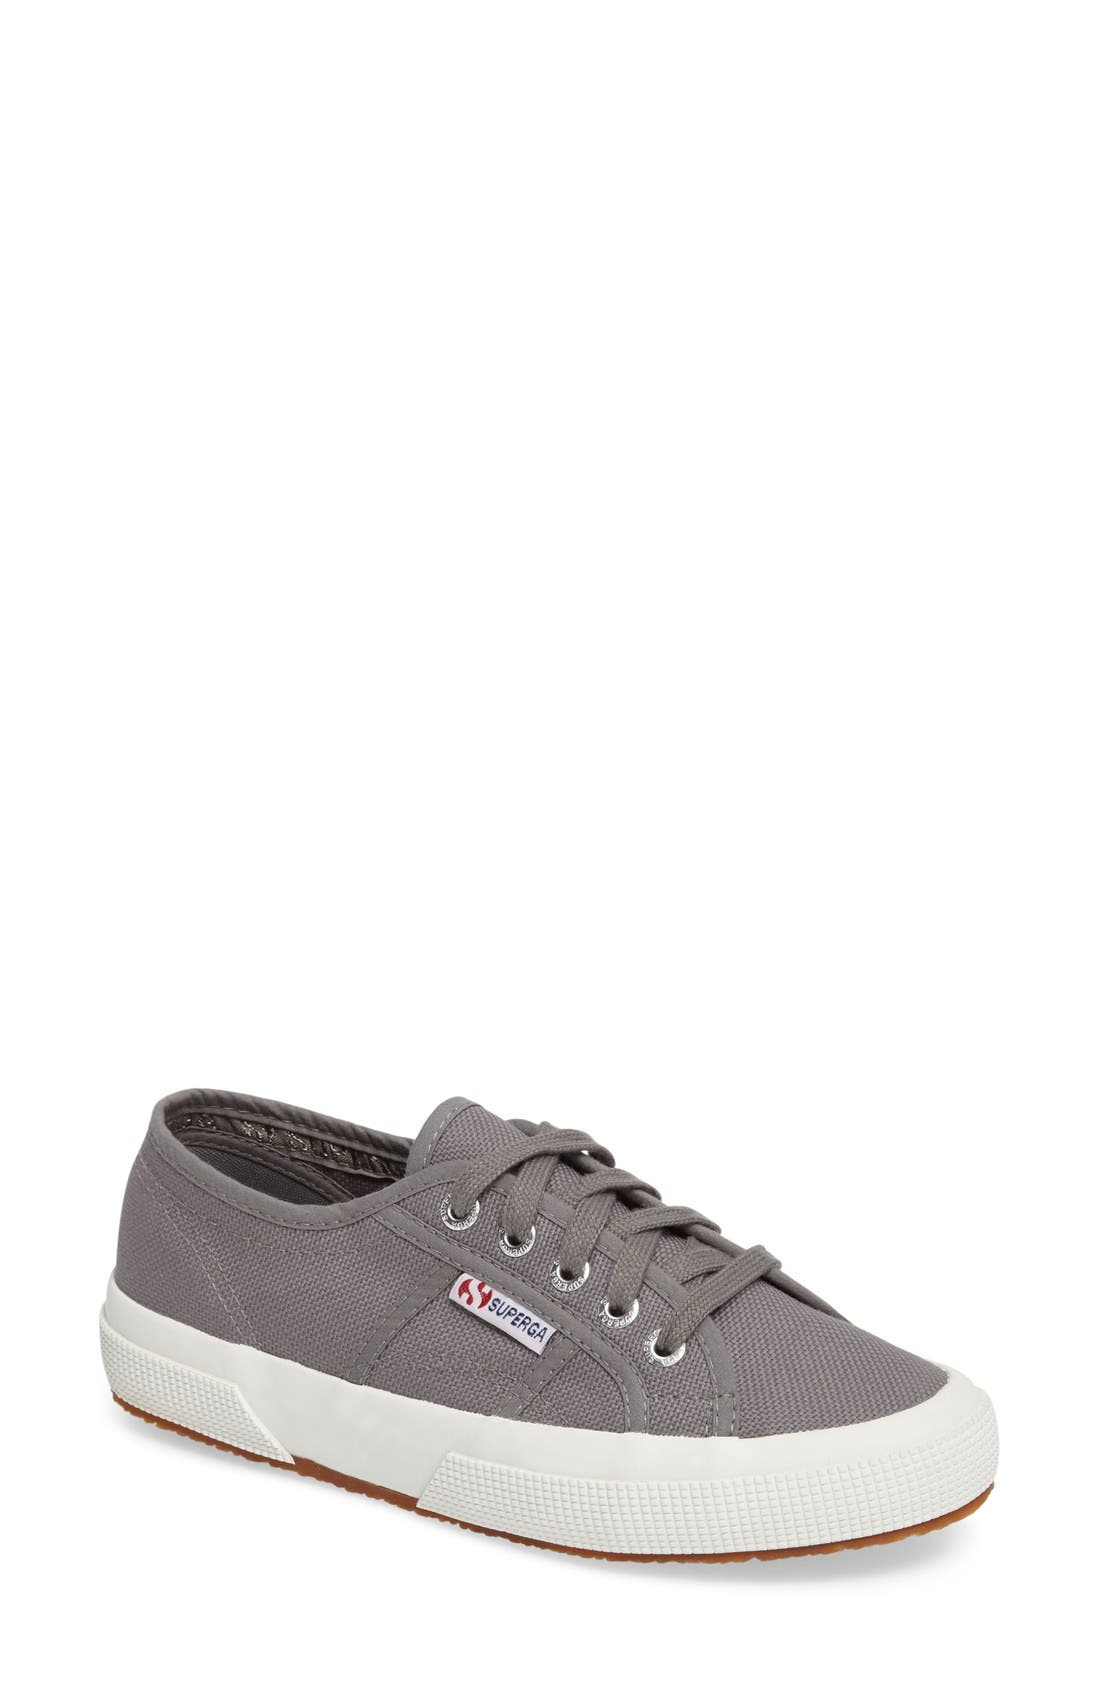 The White Brand Sneakers Street pink white - 40 sB106